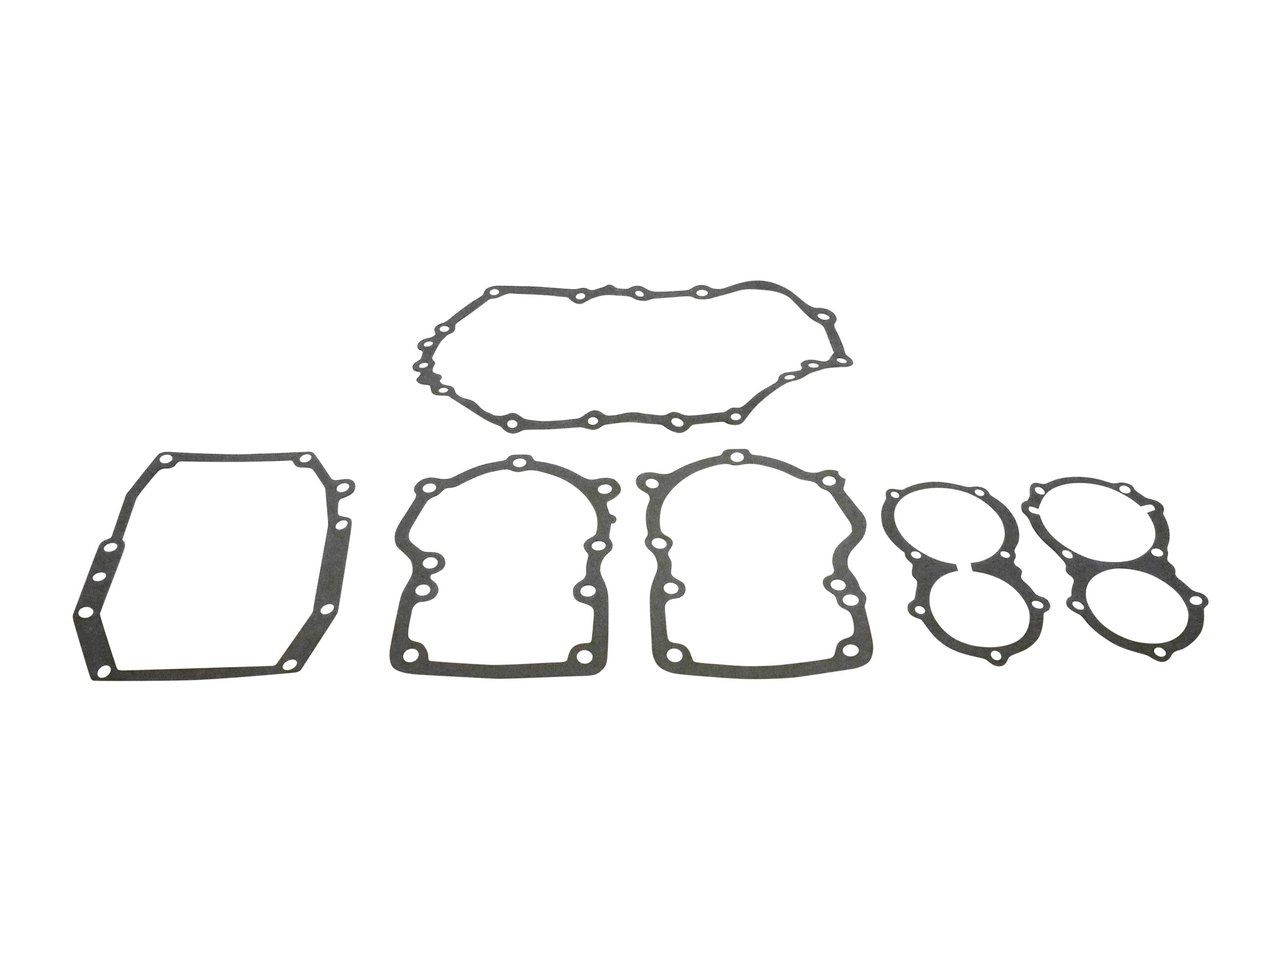 Gearbox and Transfer Case Gasket Kit suitable for